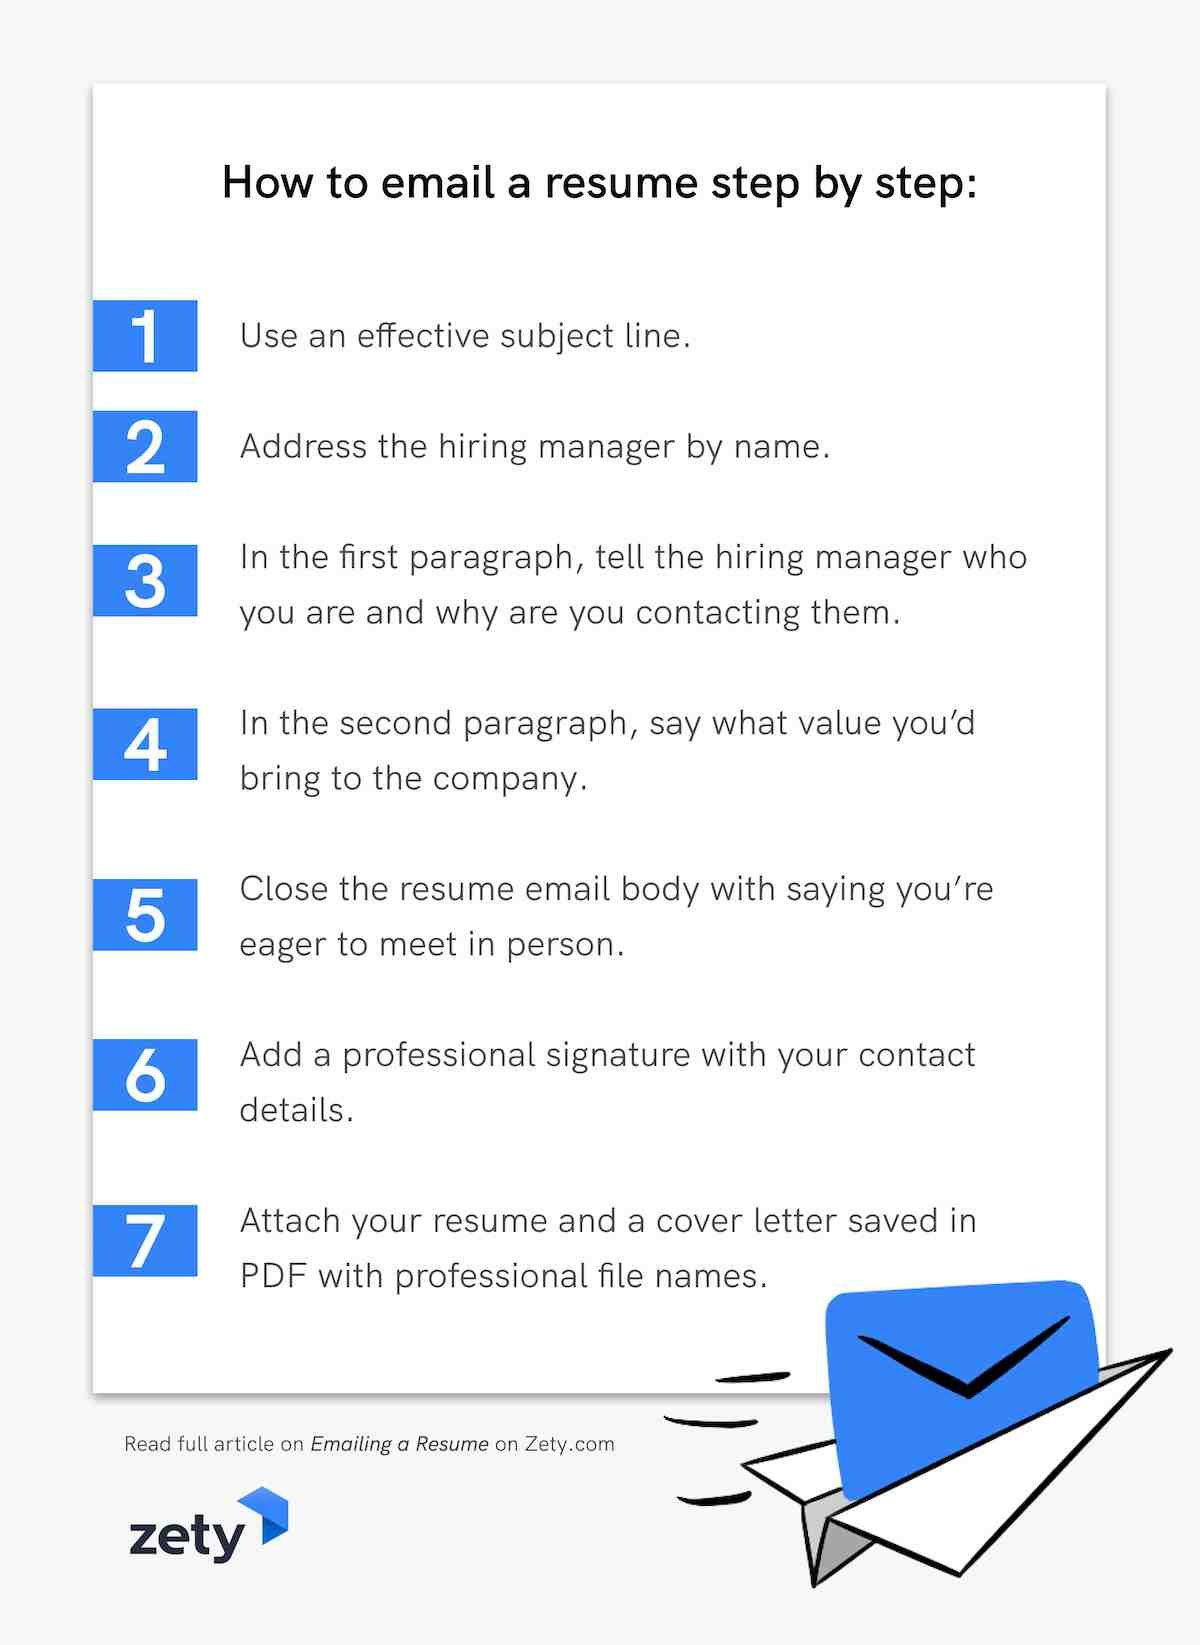 emailing resume job application email samples content for sending to step by federal Resume Content For Sending Resume